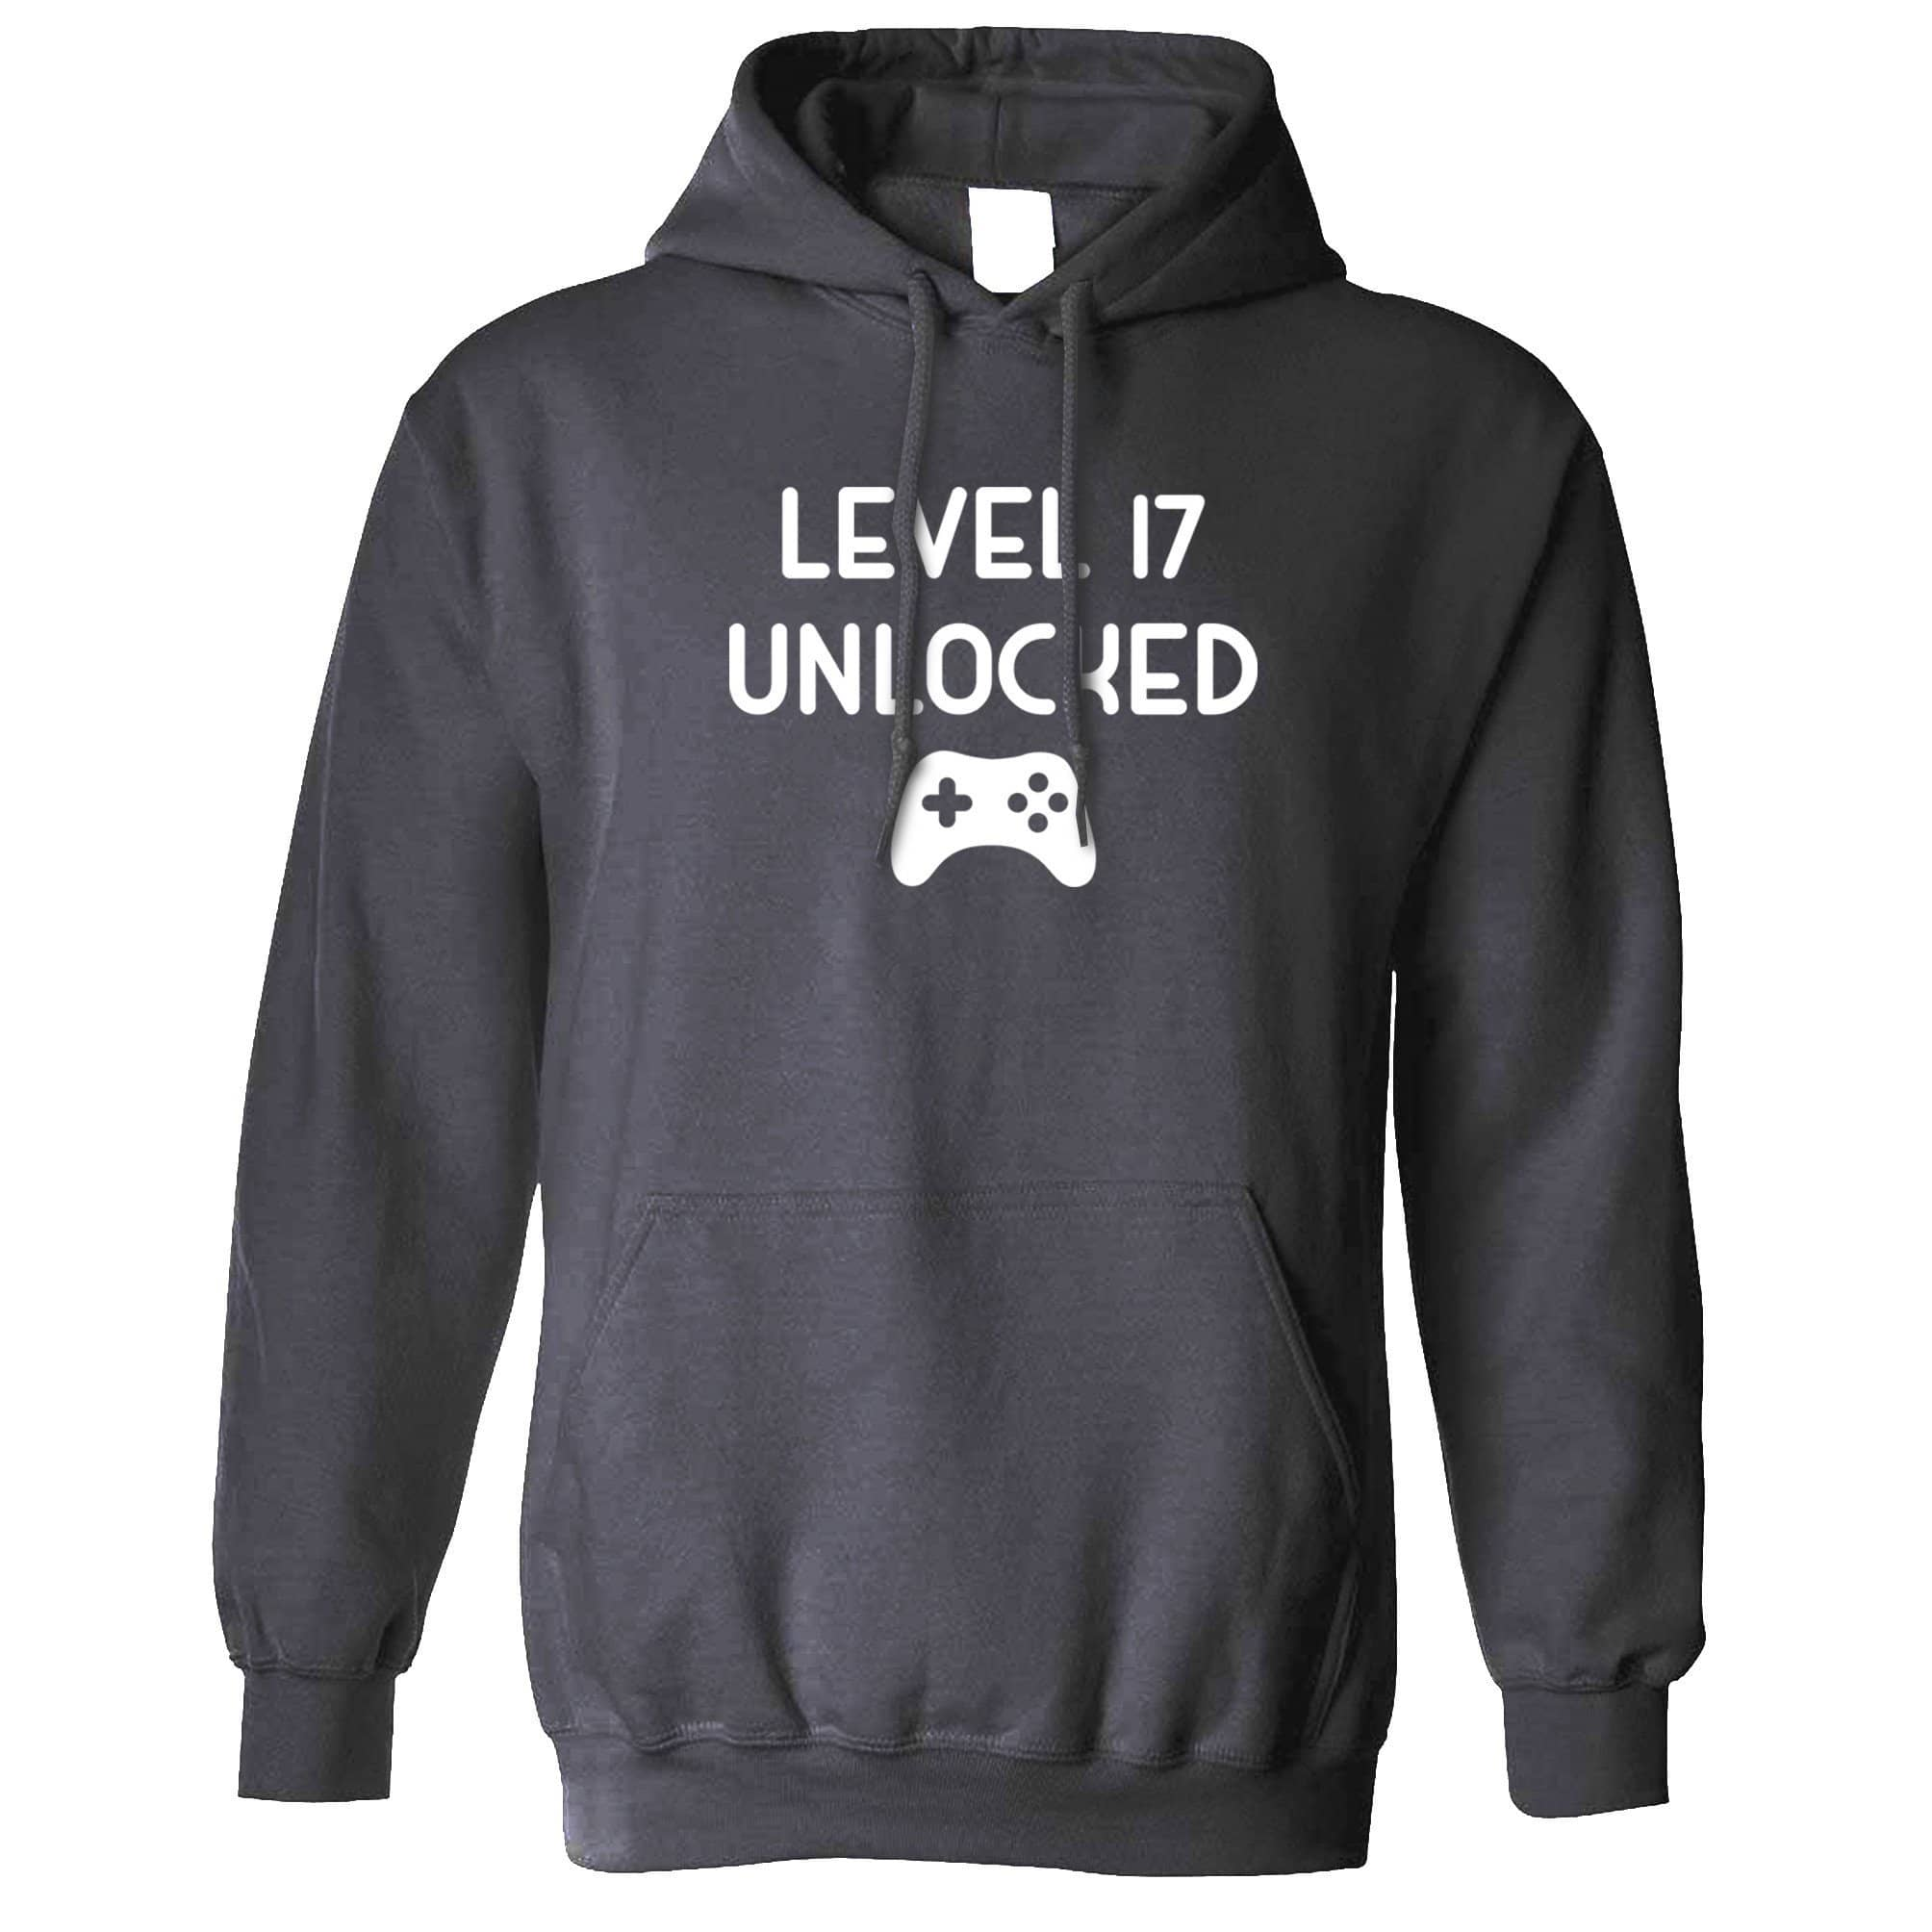 17th Birthday Gamer Hoodie Level 17 Unlocked Slogan Hooded Jumper